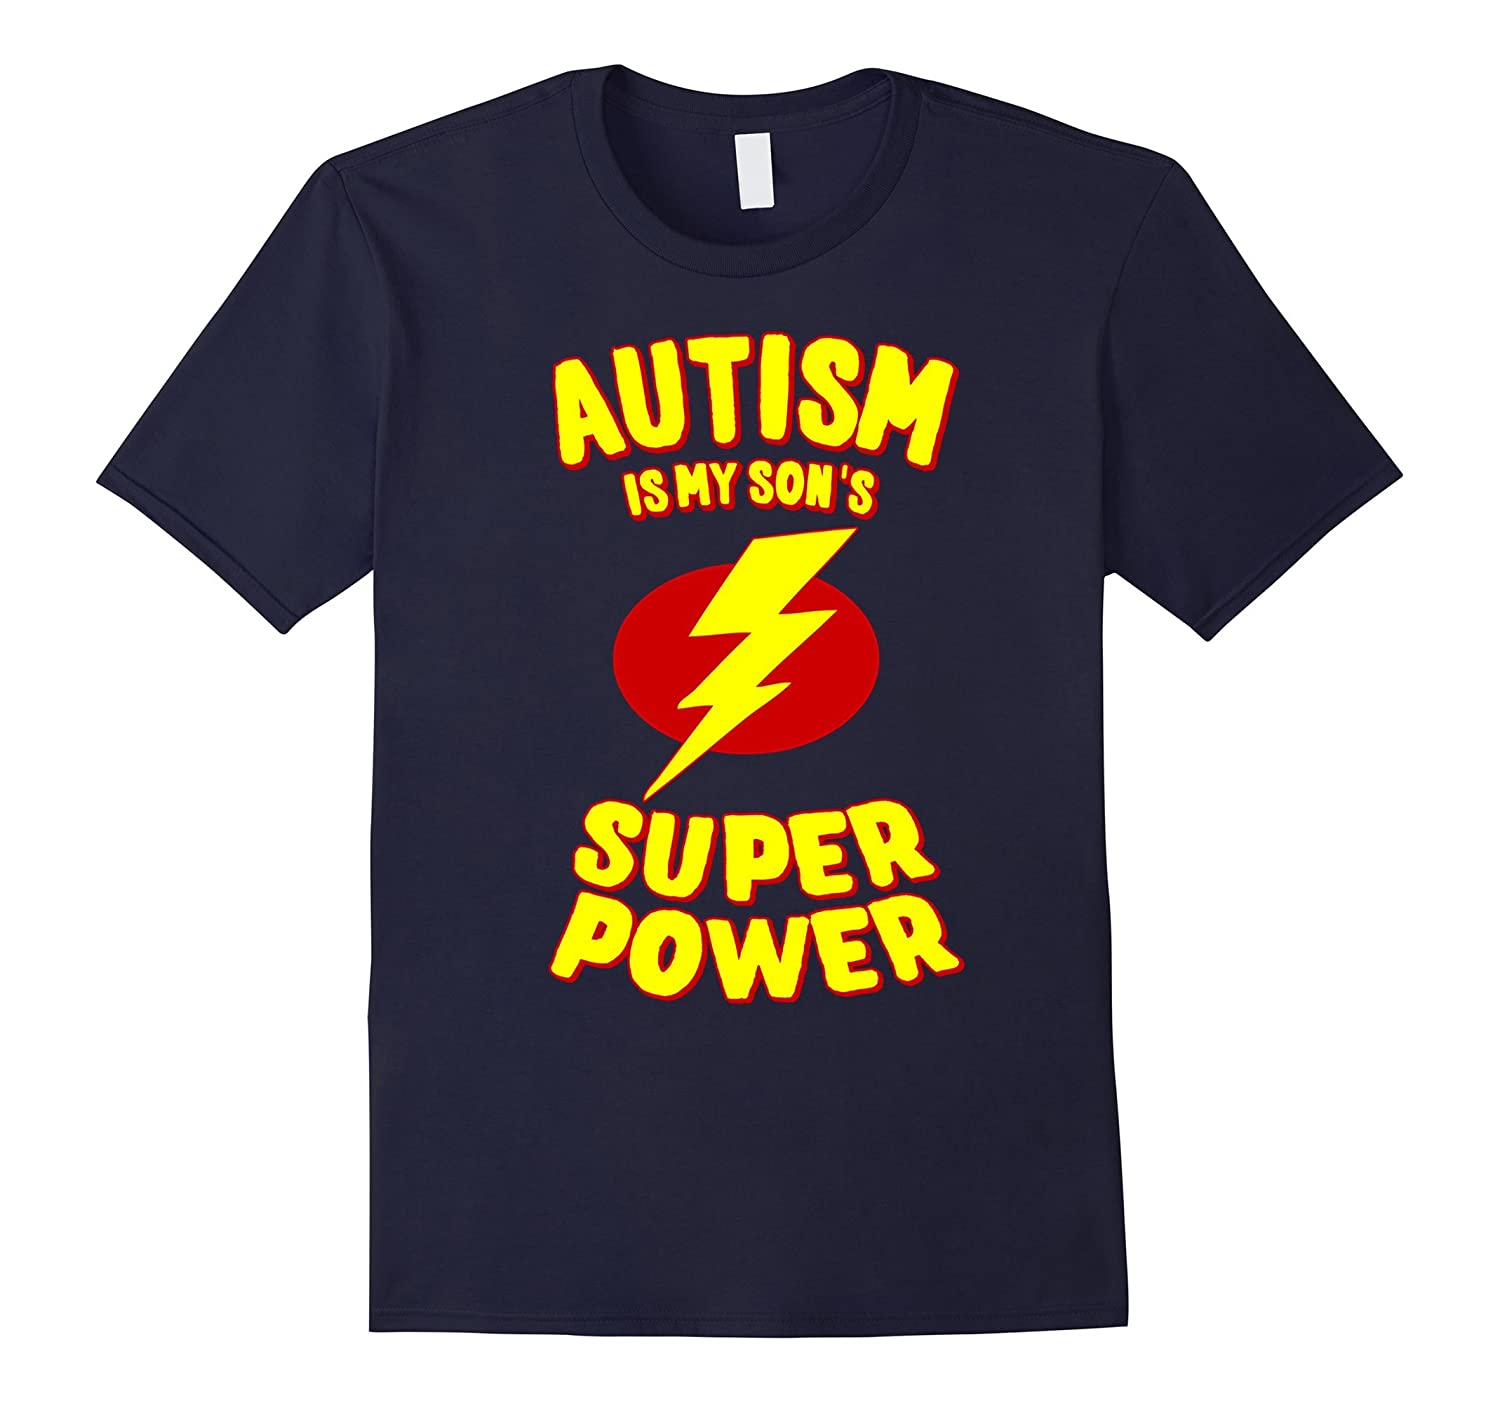 Autism is My Son's Superpower T-Shirt